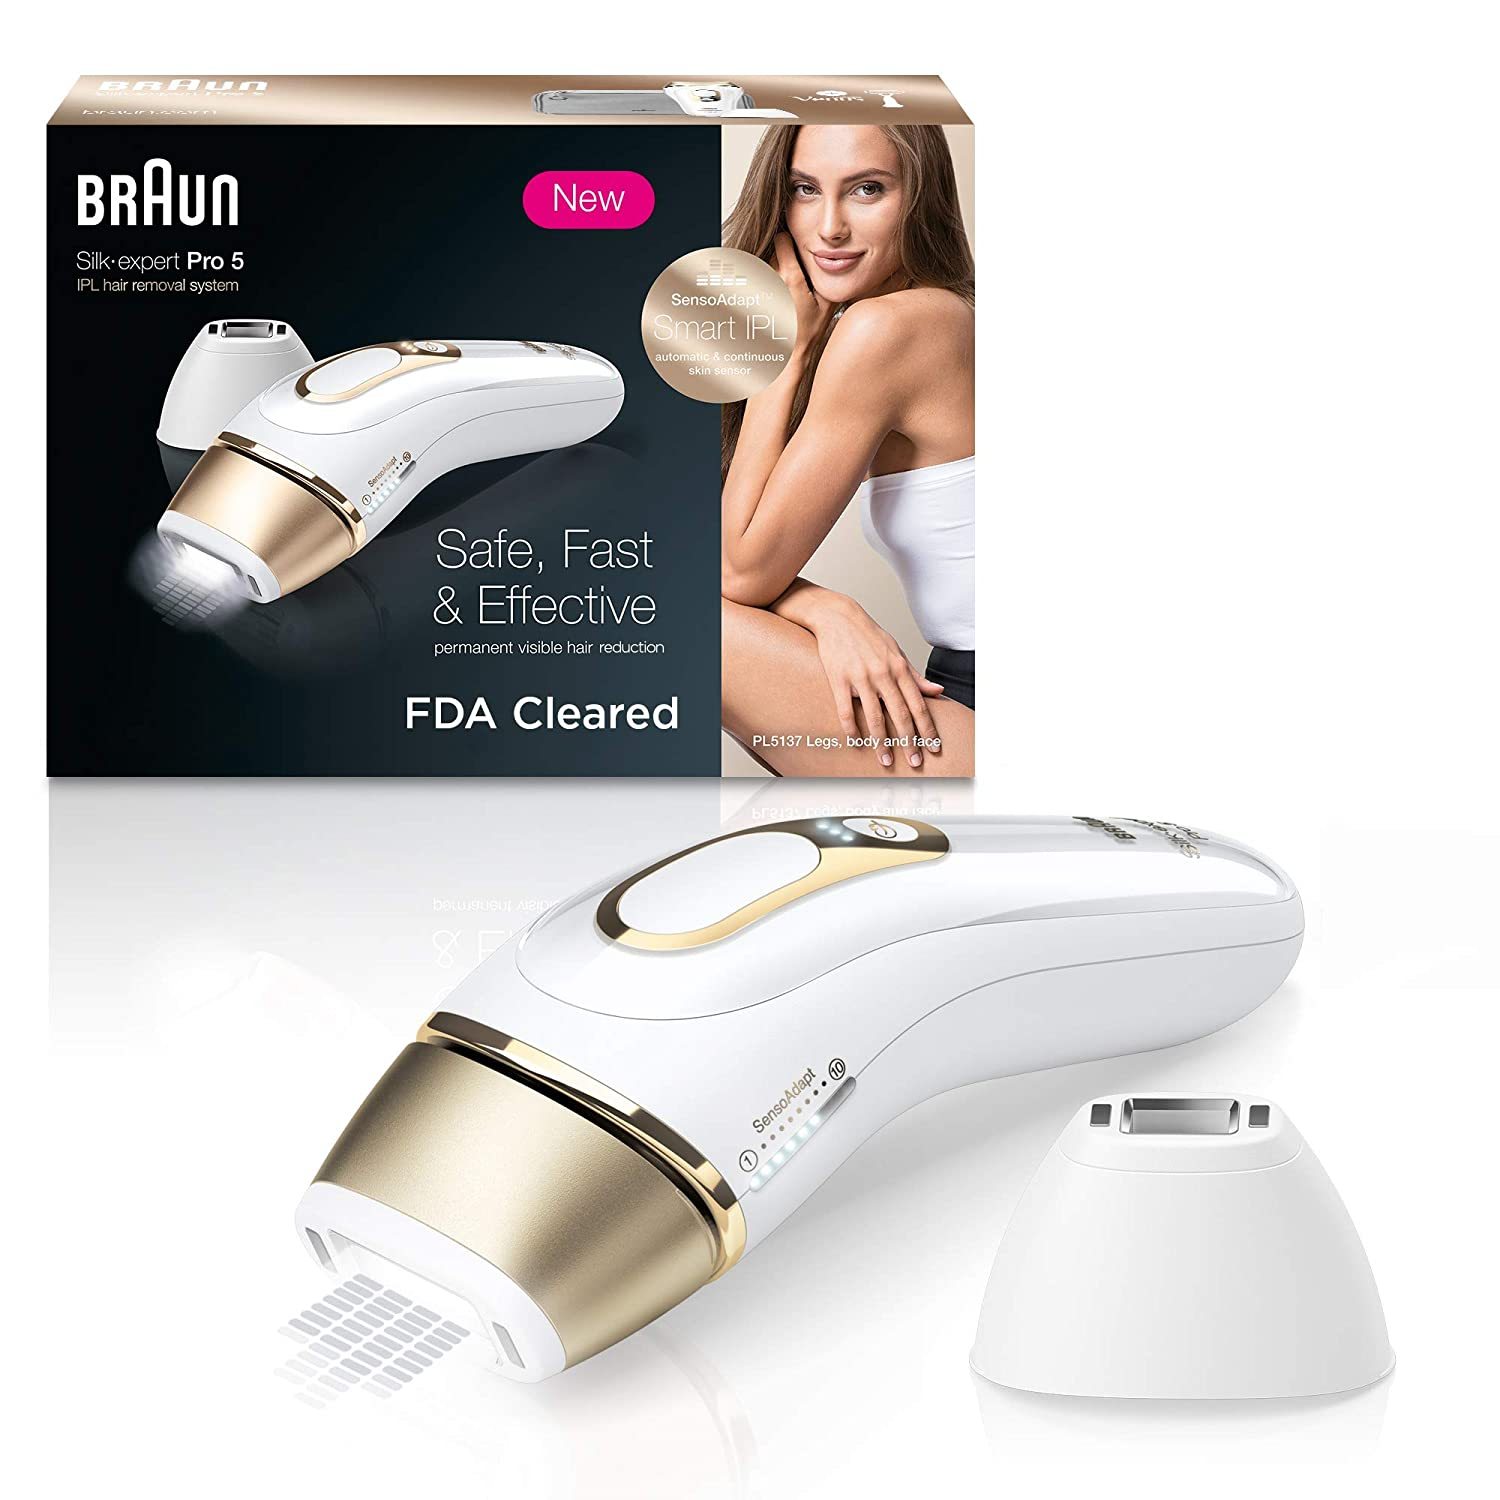 Review of Braun IPL Hair Removal for Women, Silk Expert Pro 5 PL5137